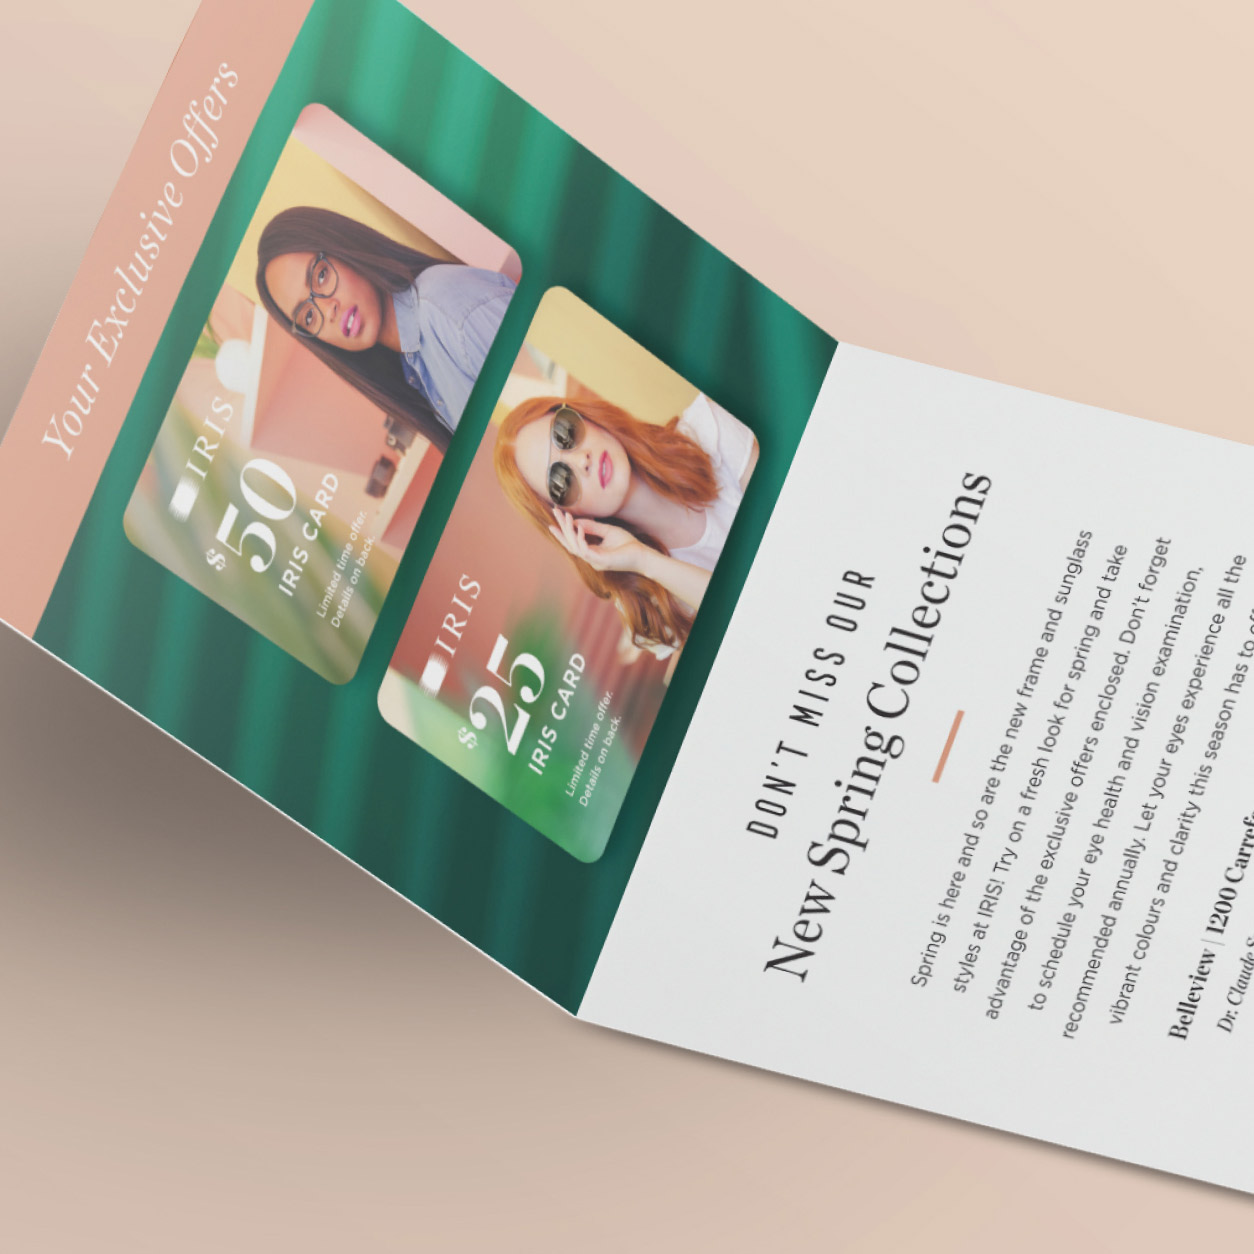 Printed promo mailer for over 150 stores in Canada